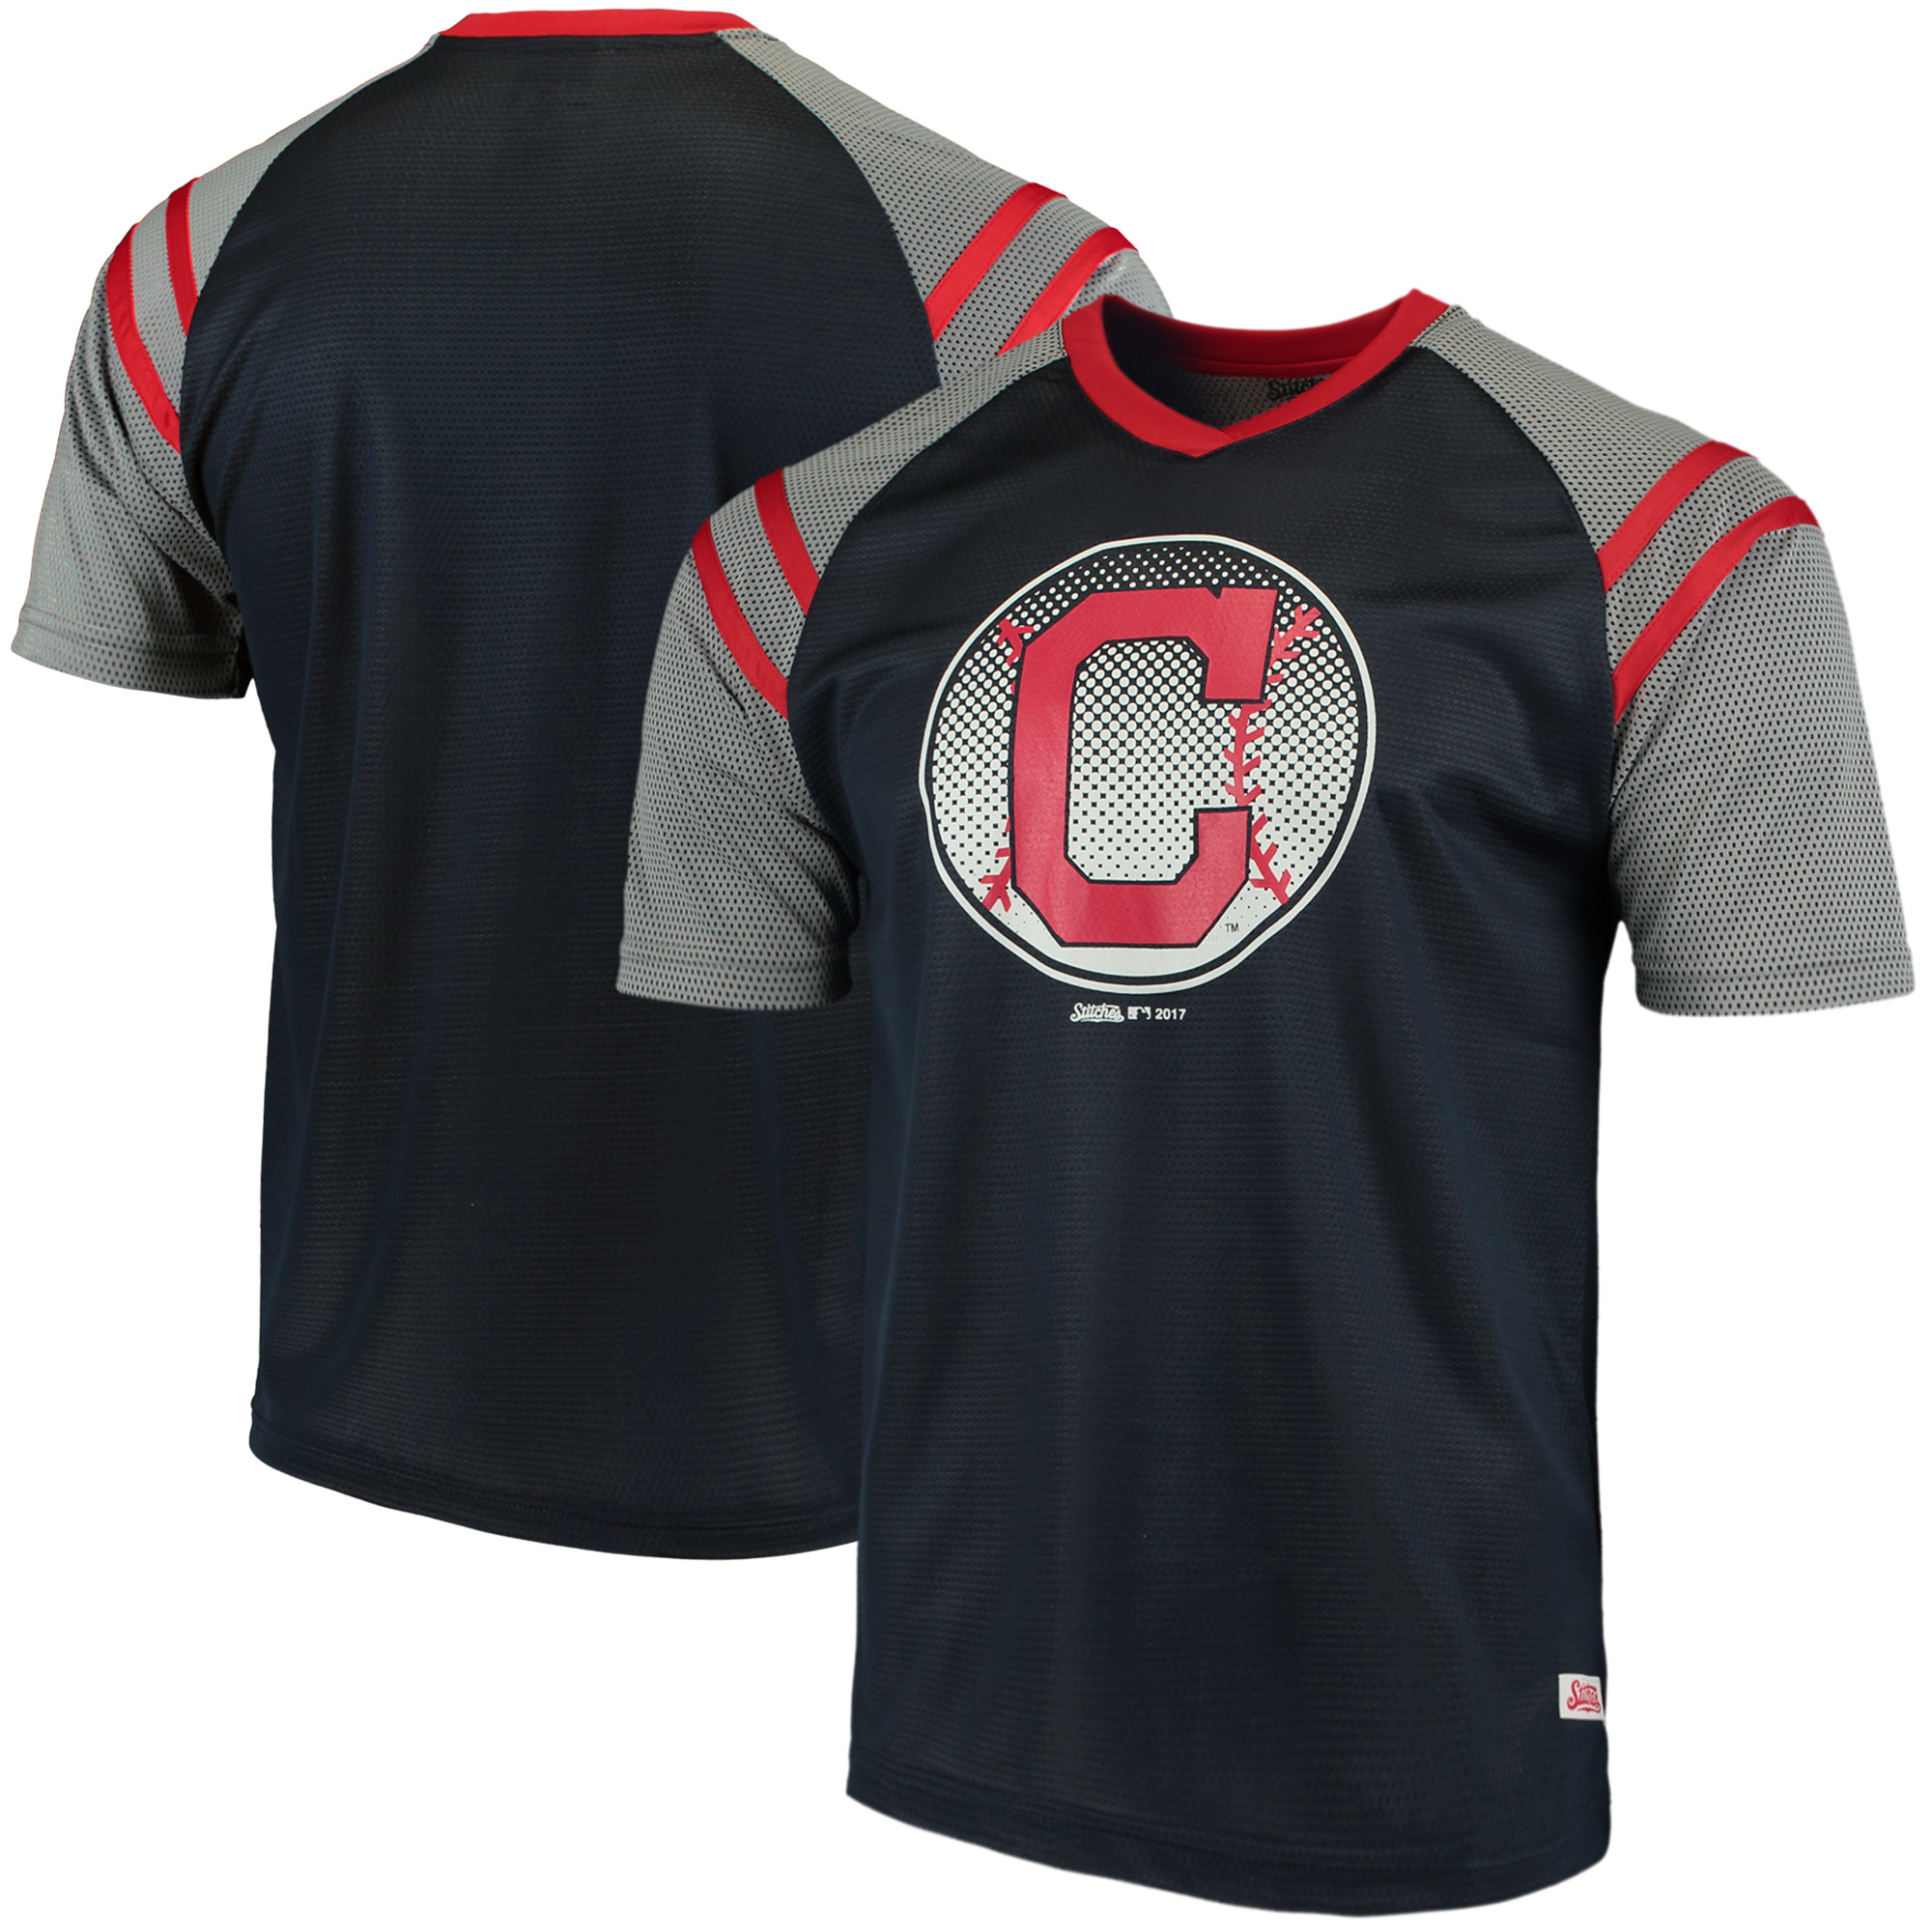 Cleveland Indians Stitches V-Neck Mesh Jersey T-Shirt - Navy/Red